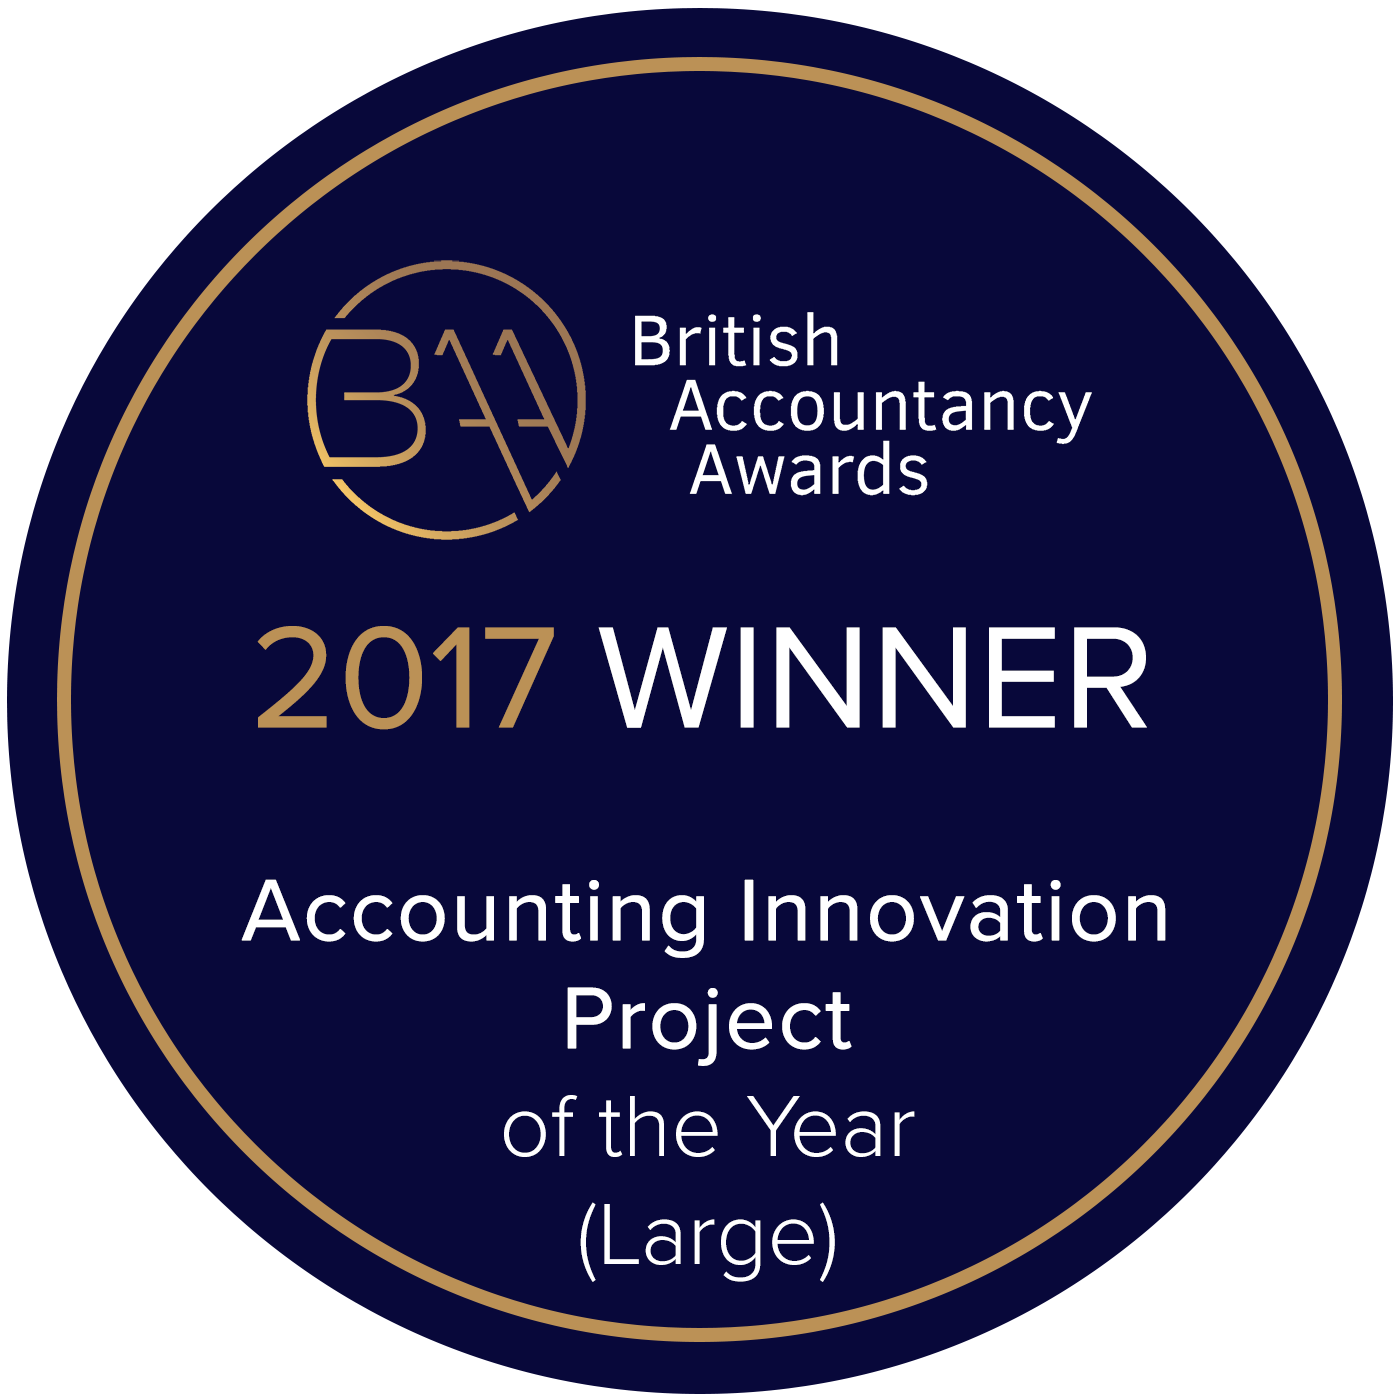 BAA2017 - BAA winner badge - Accounting innovation - Large